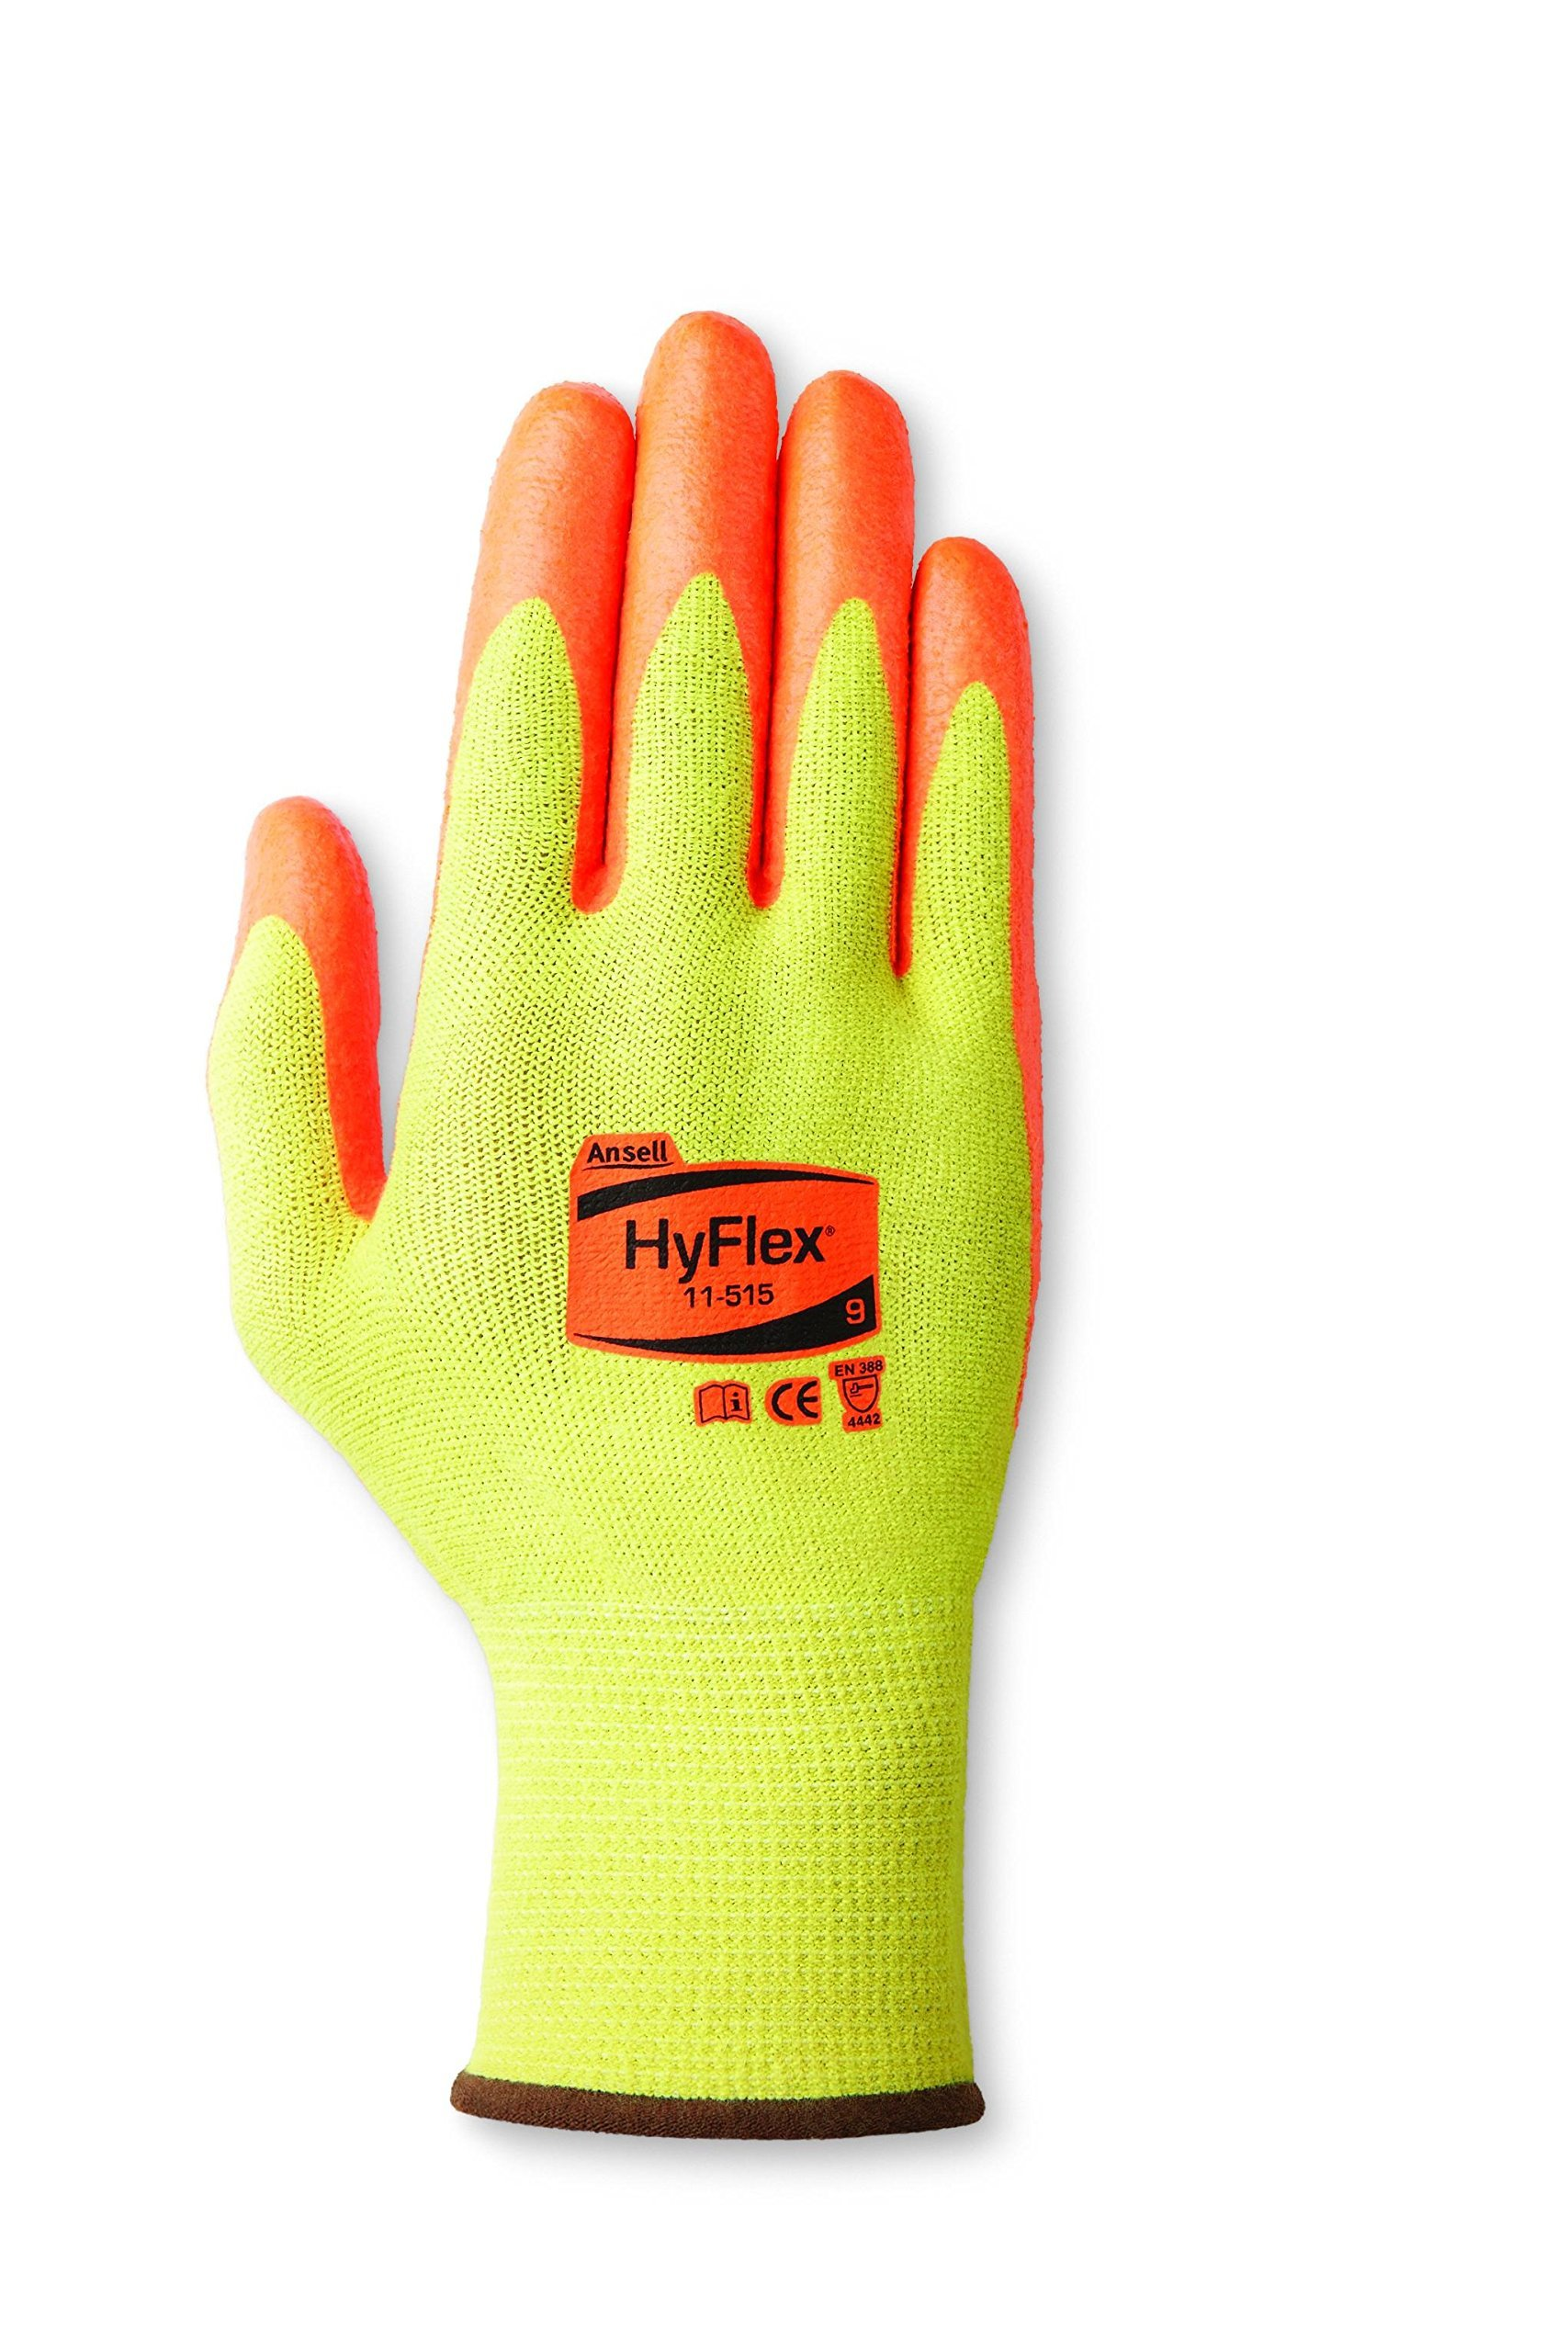 Ansell HyFlex 11-515 DuPont Kevlar Medium-Duty Cut Protection Glove with High Visibility, Abrasion/Cut Resistant, Size 9, Yellow (Pack of 12 Pair)